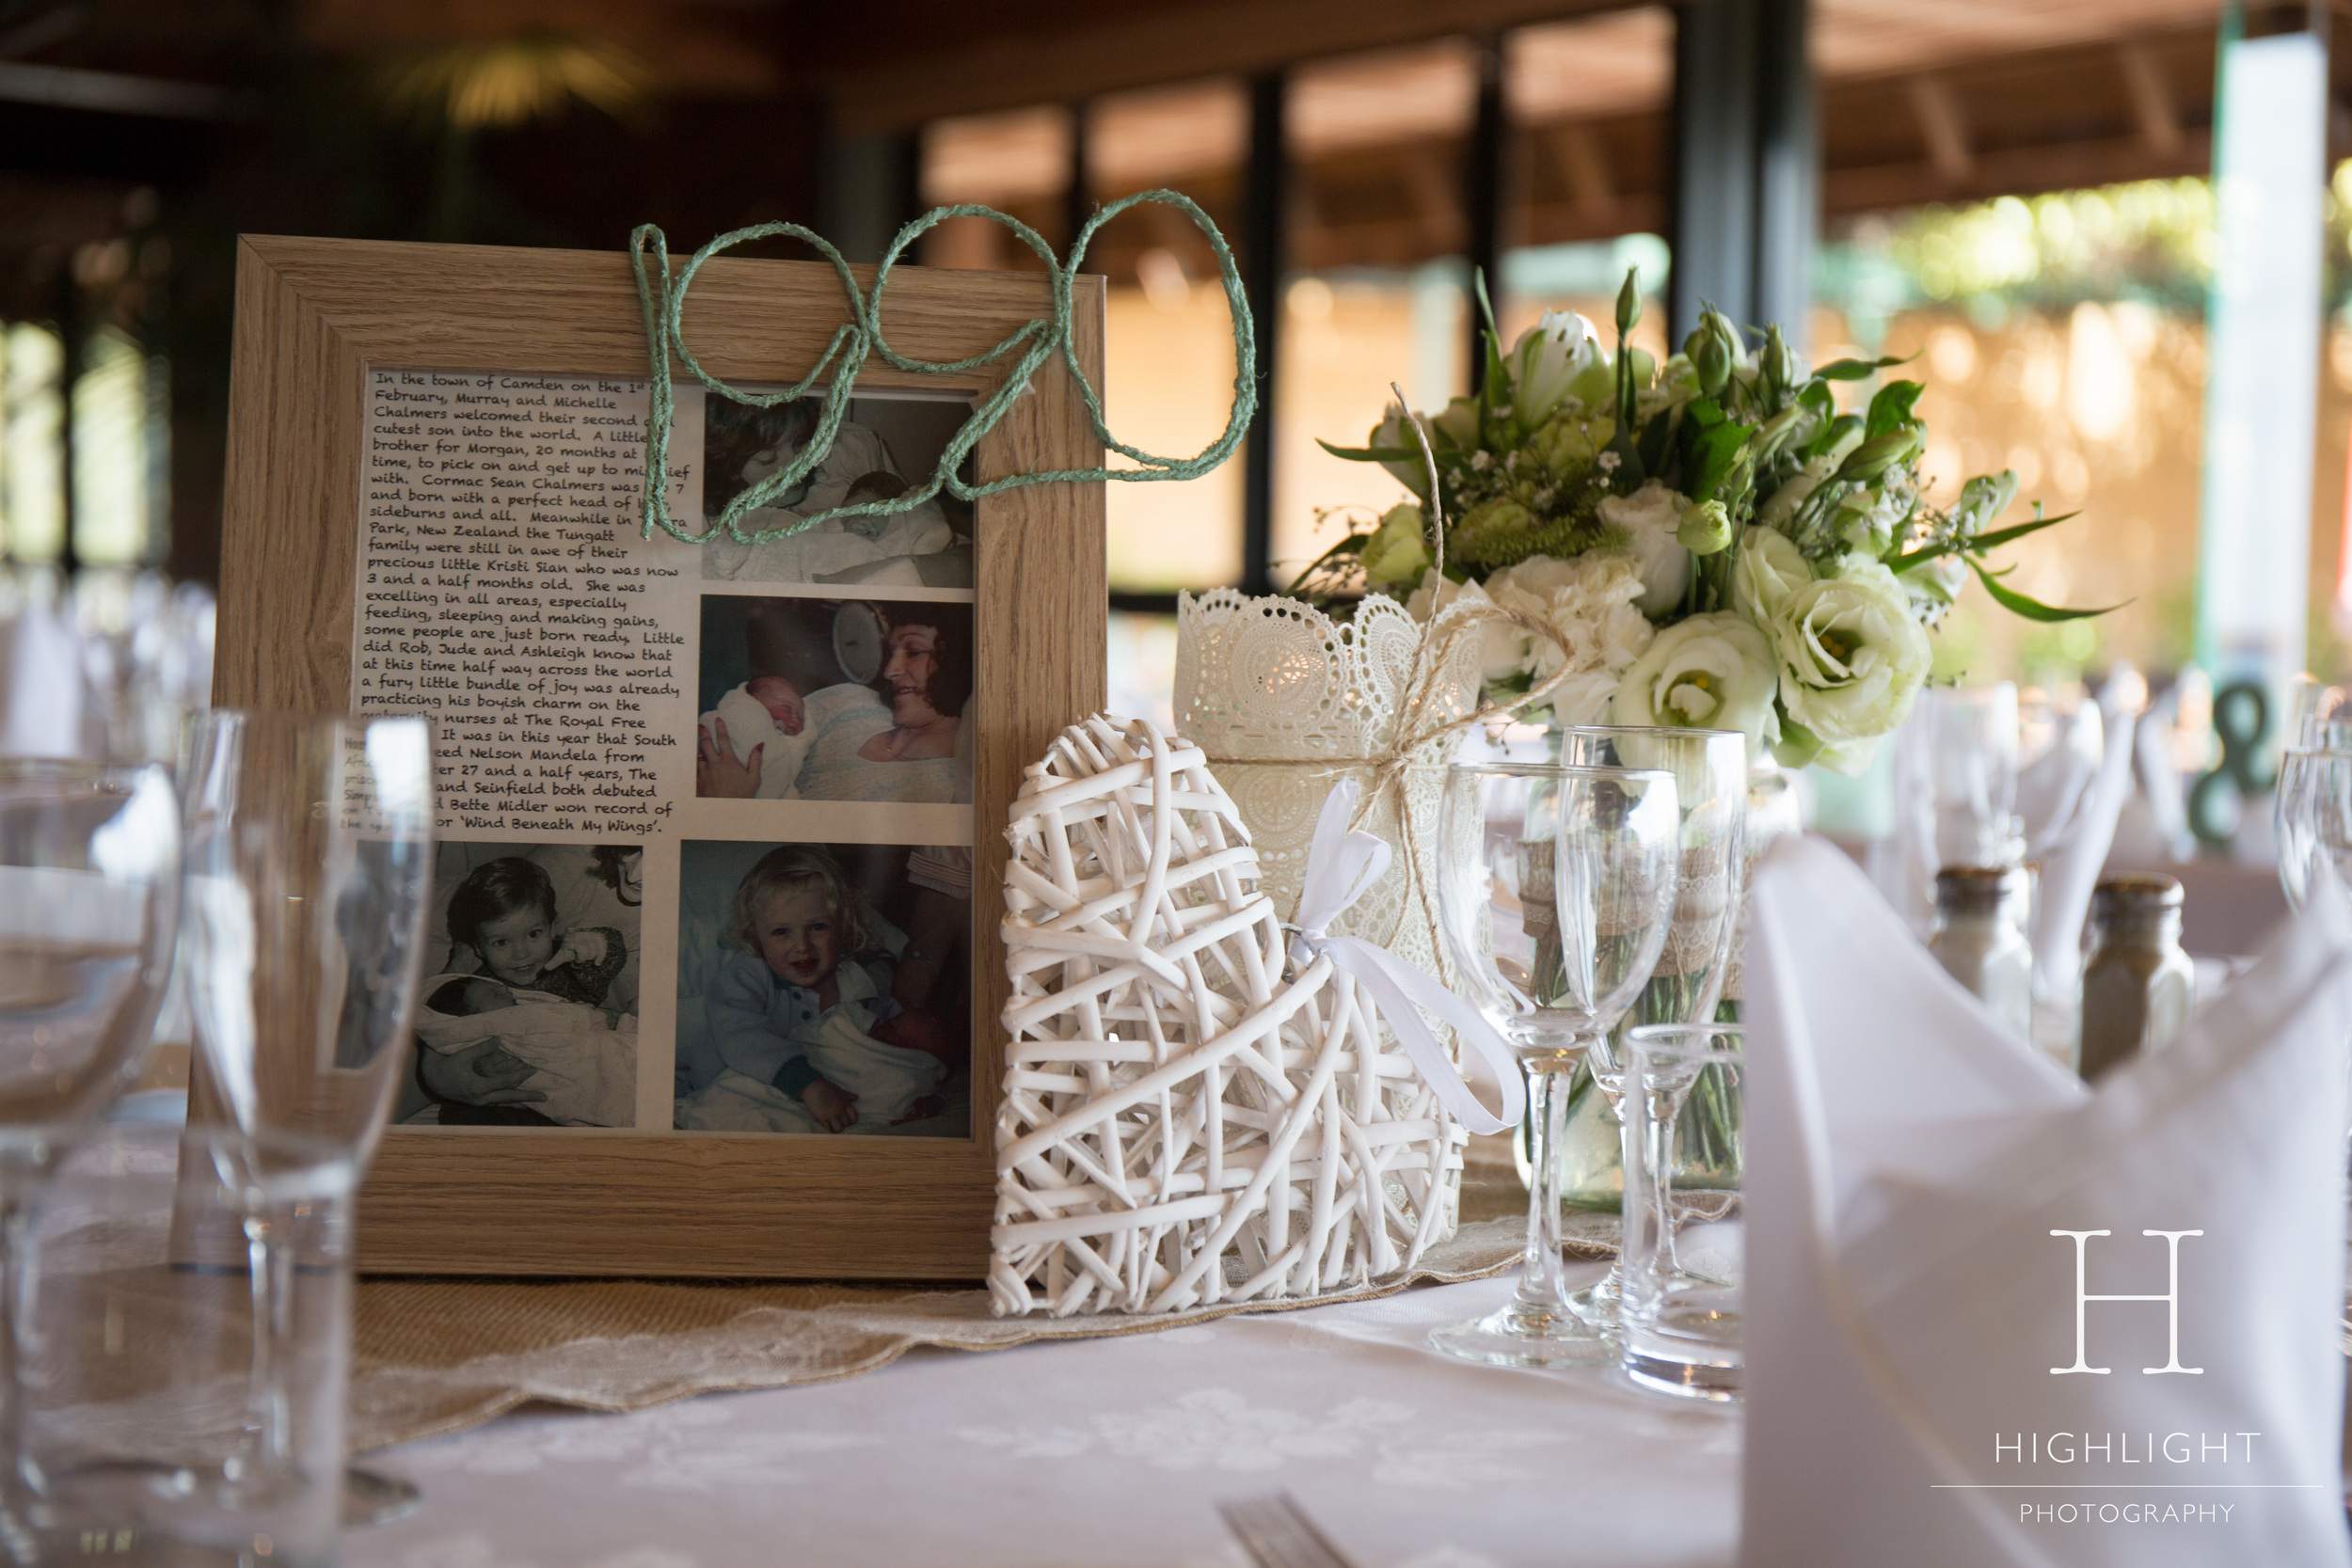 highlight_photography_wedding_new_zealand_decorations.jpg